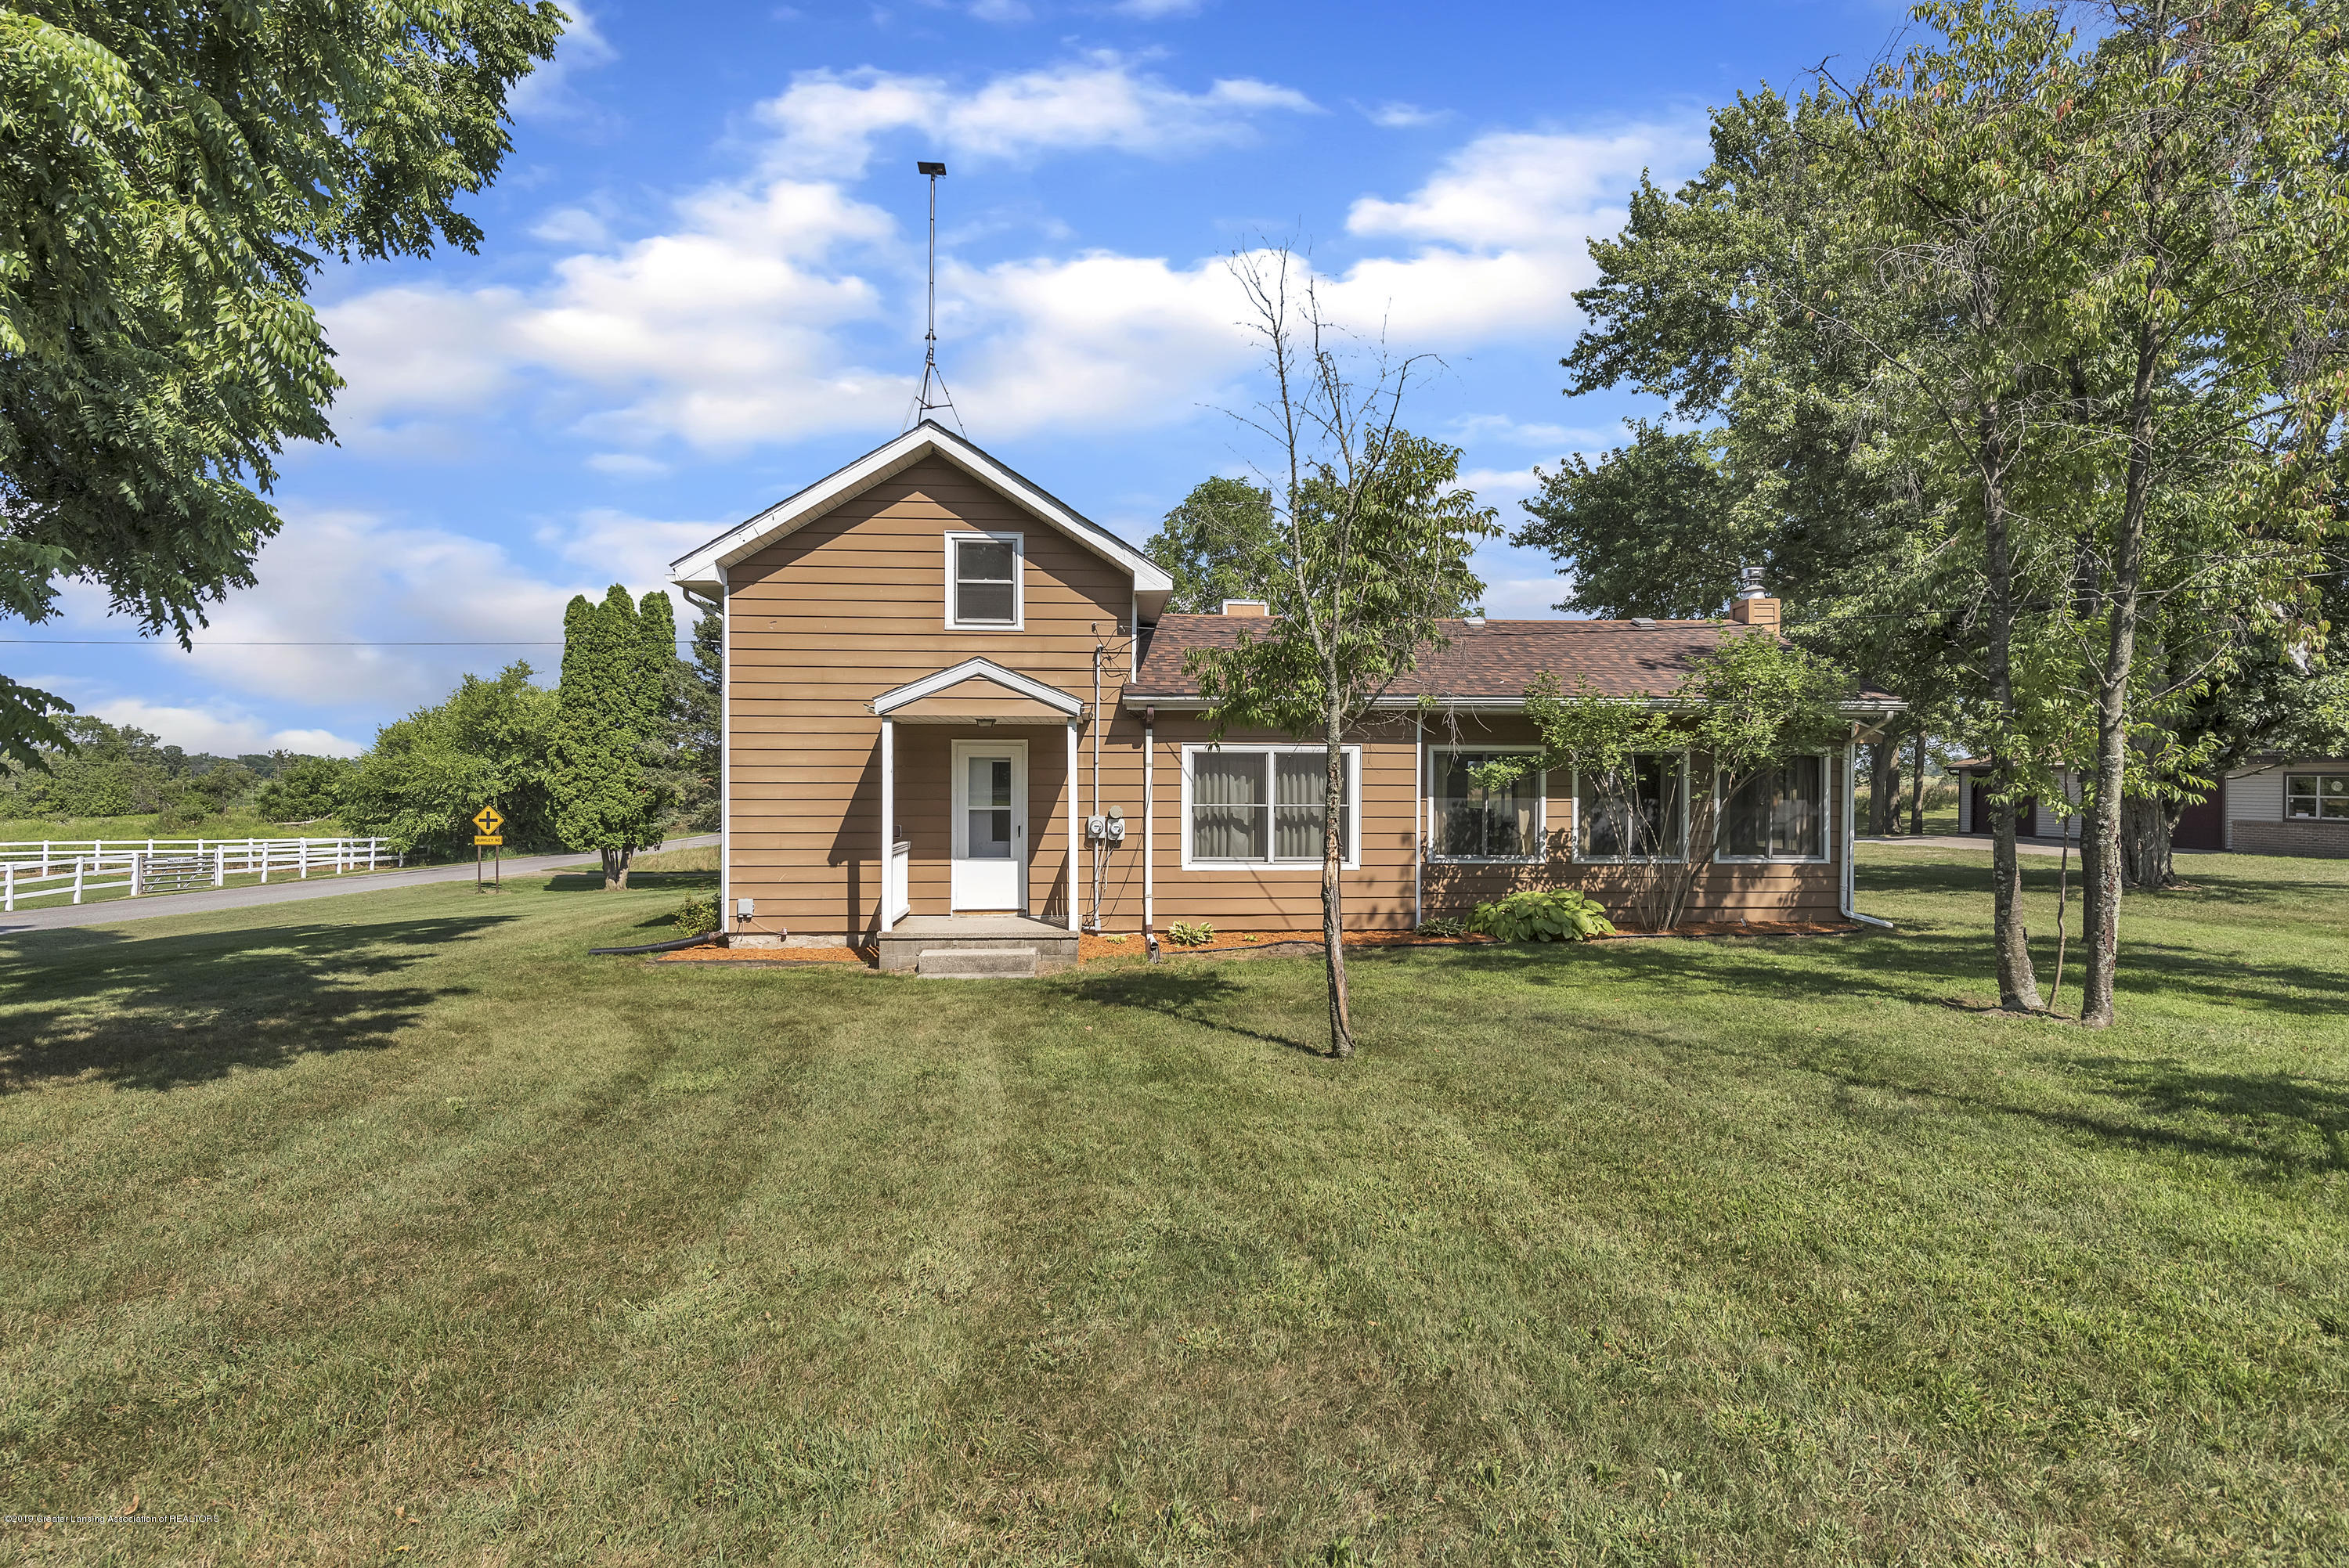 450 Noble Rd - 450-Noble-Rd-Williamston-MI-48895-window - 9